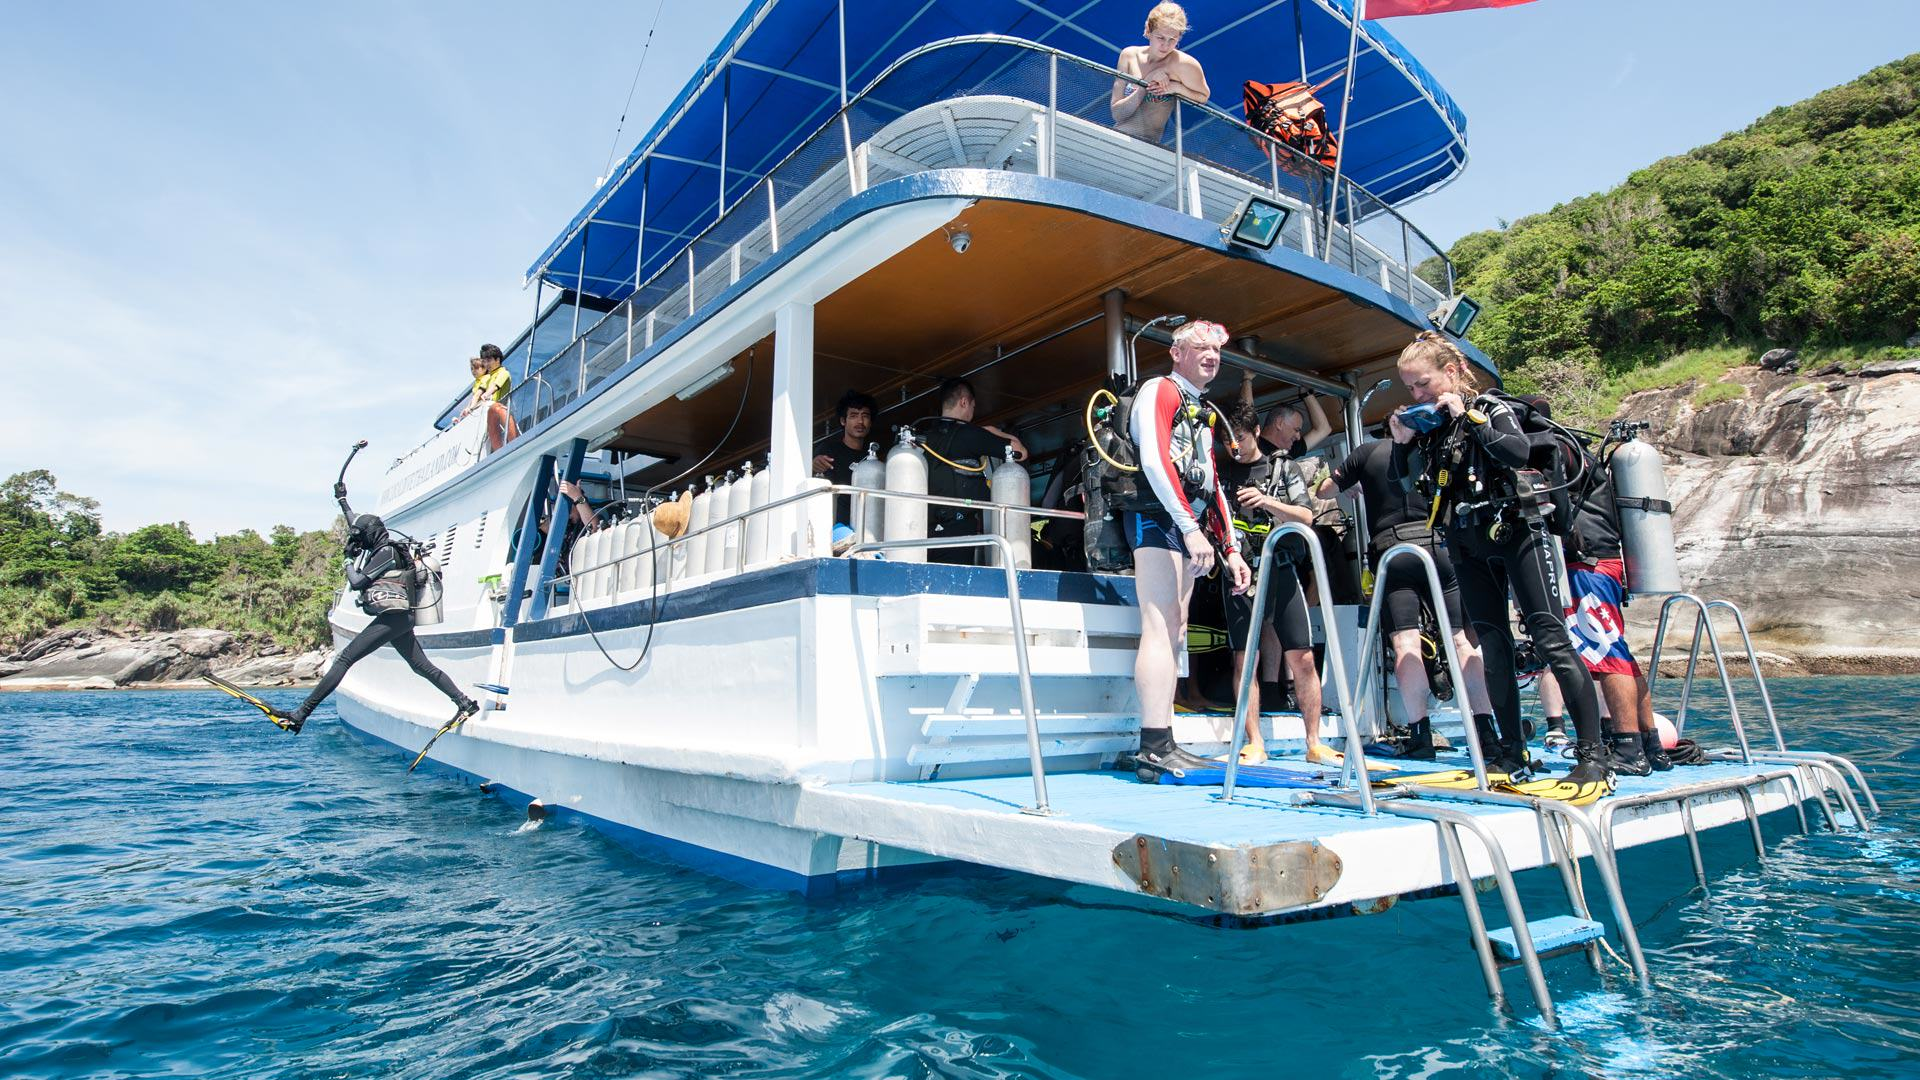 M/V Kepsub – Diving Tours